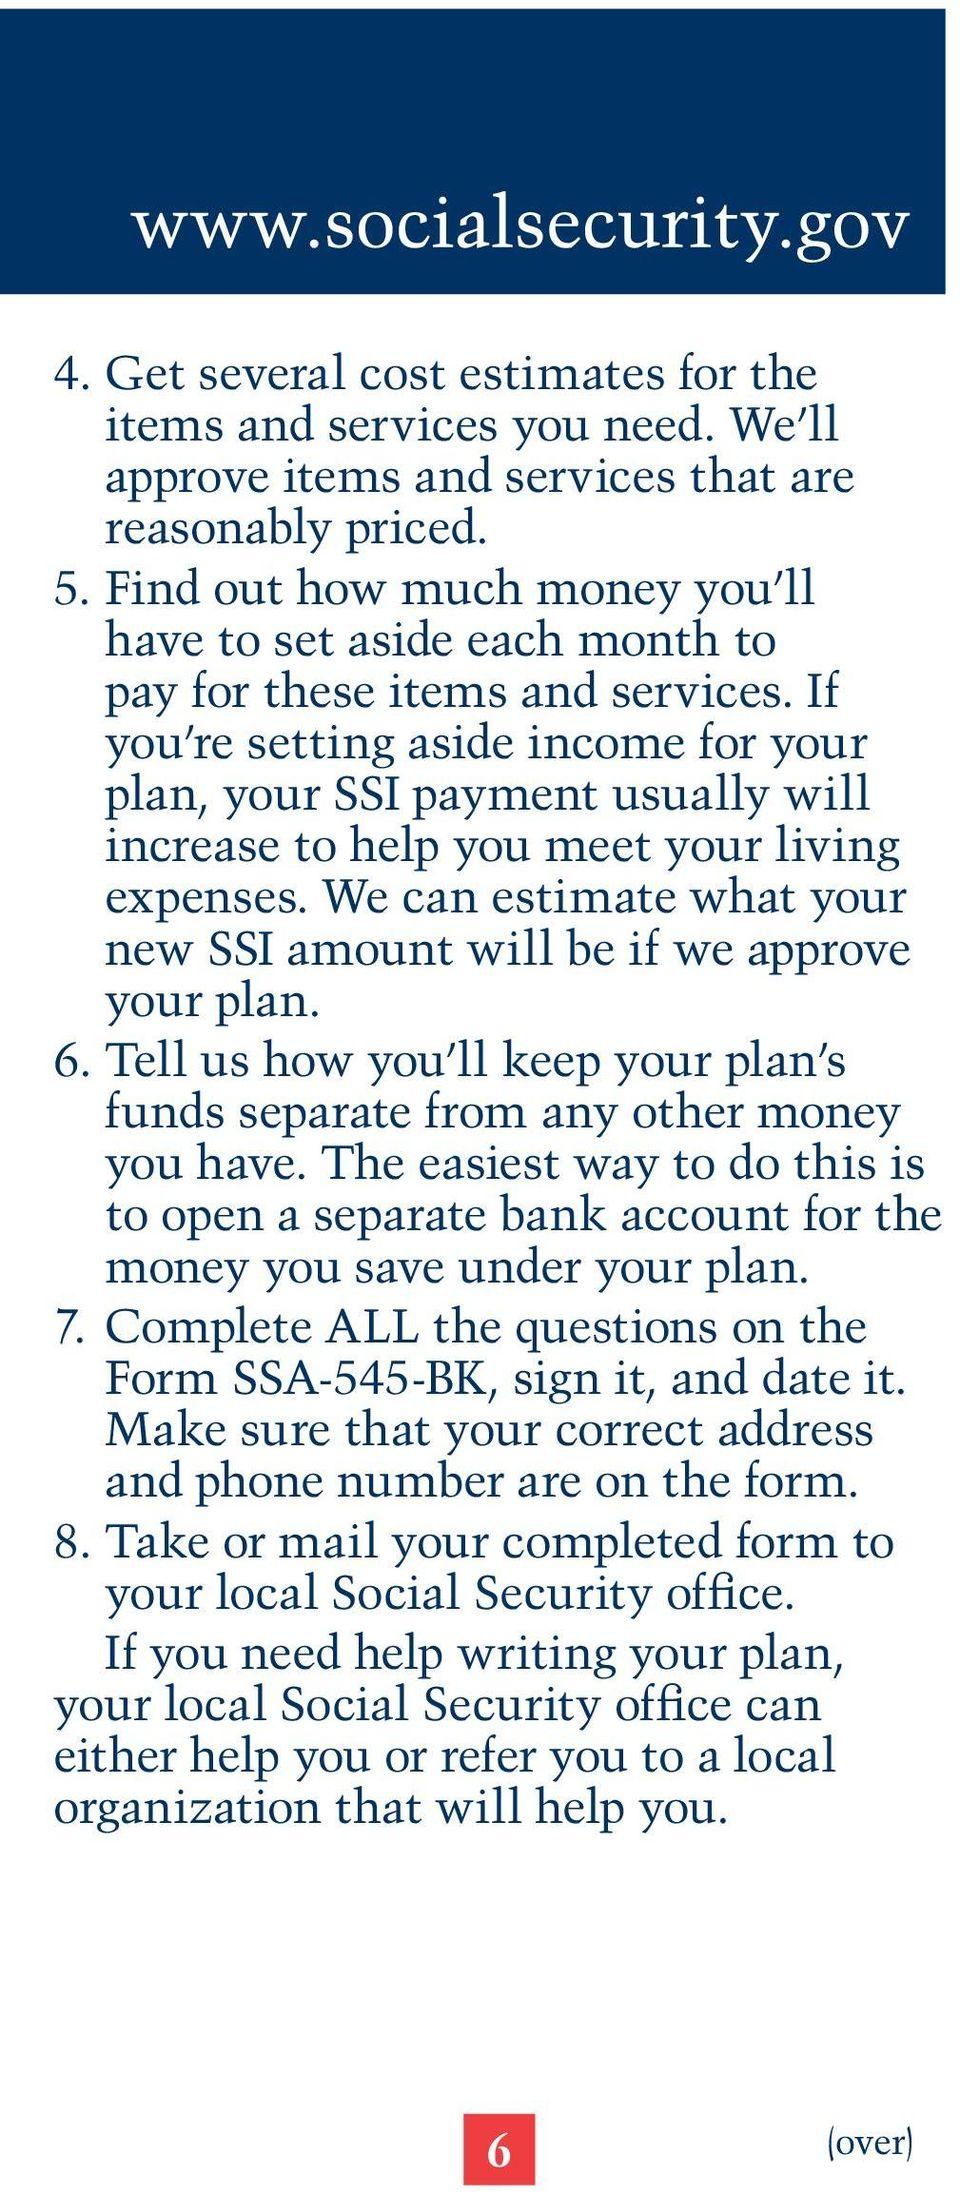 If you re setting aside income for your plan, your SSI payment usually will increase to help you meet your living expenses. We can estimate what your new SSI amount will be if we approve your plan. 6.